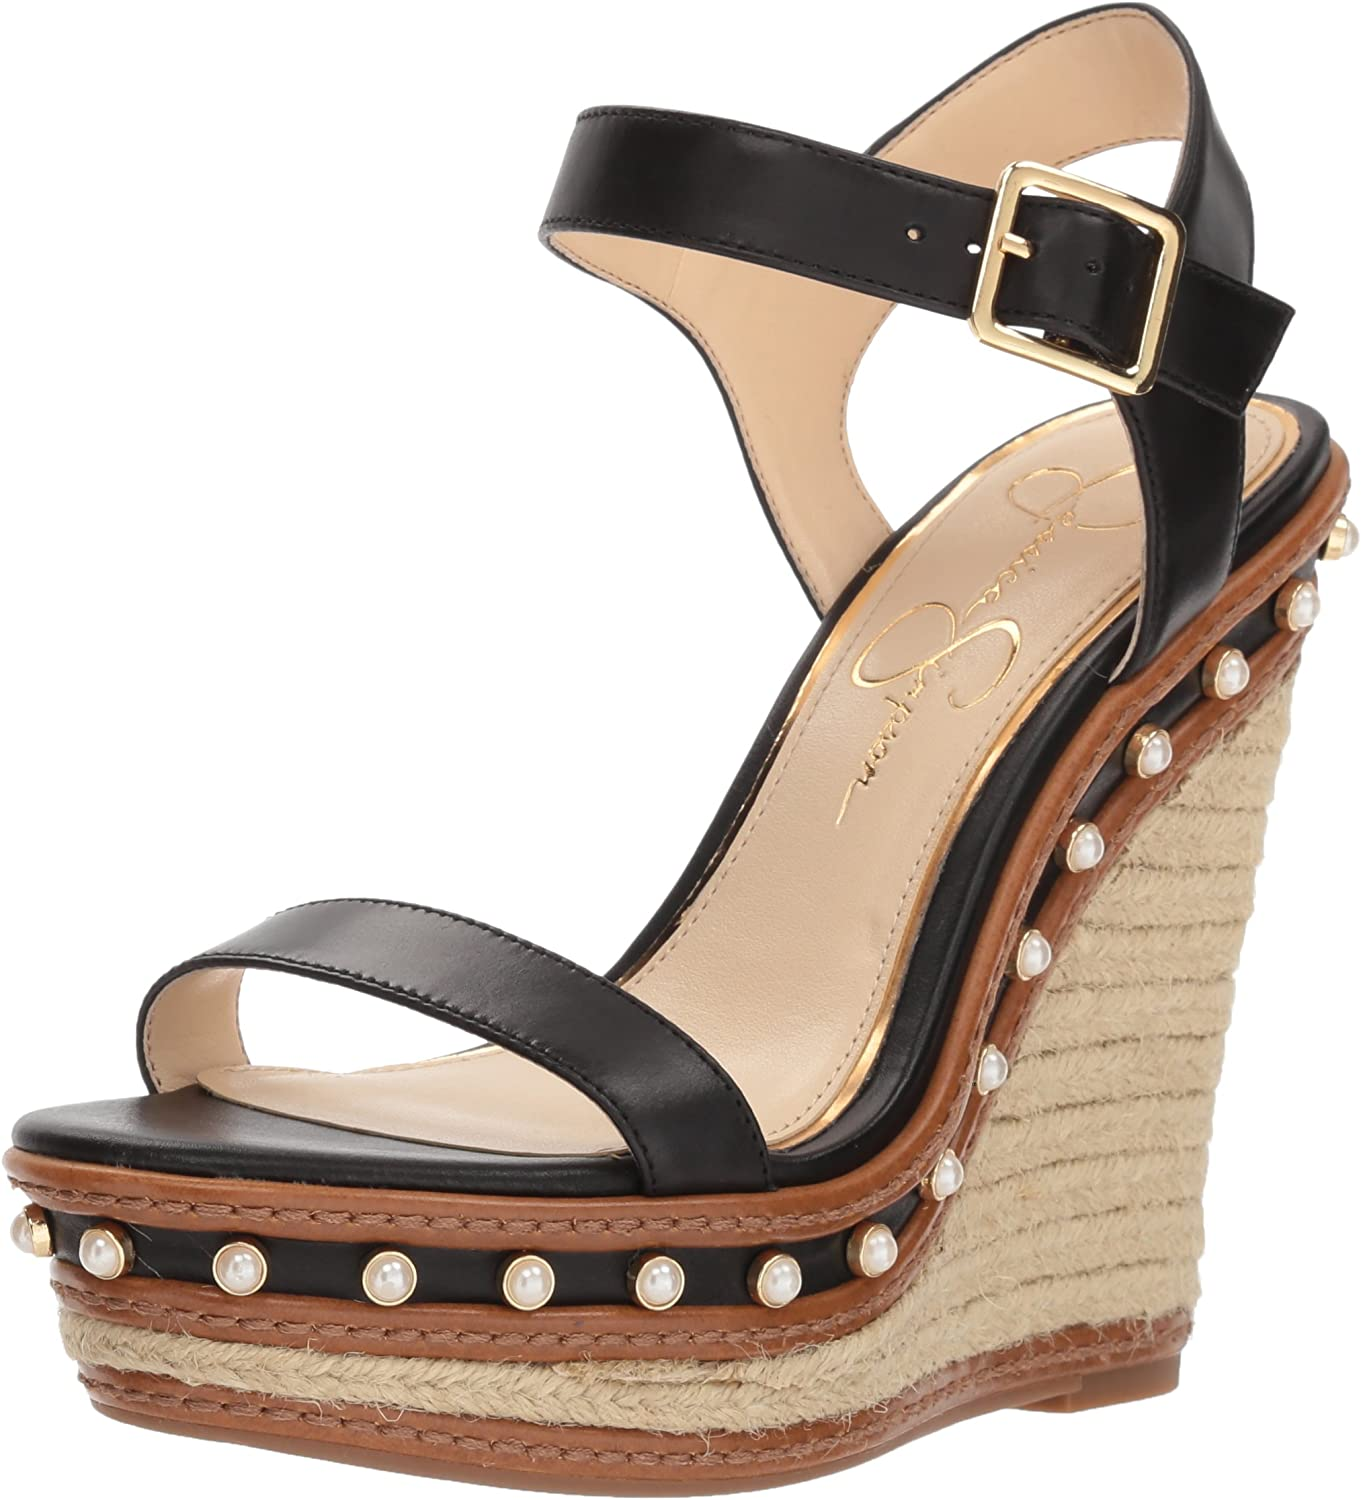 Jessica Simpson Womens Arly Espadrille Wedge Sandal